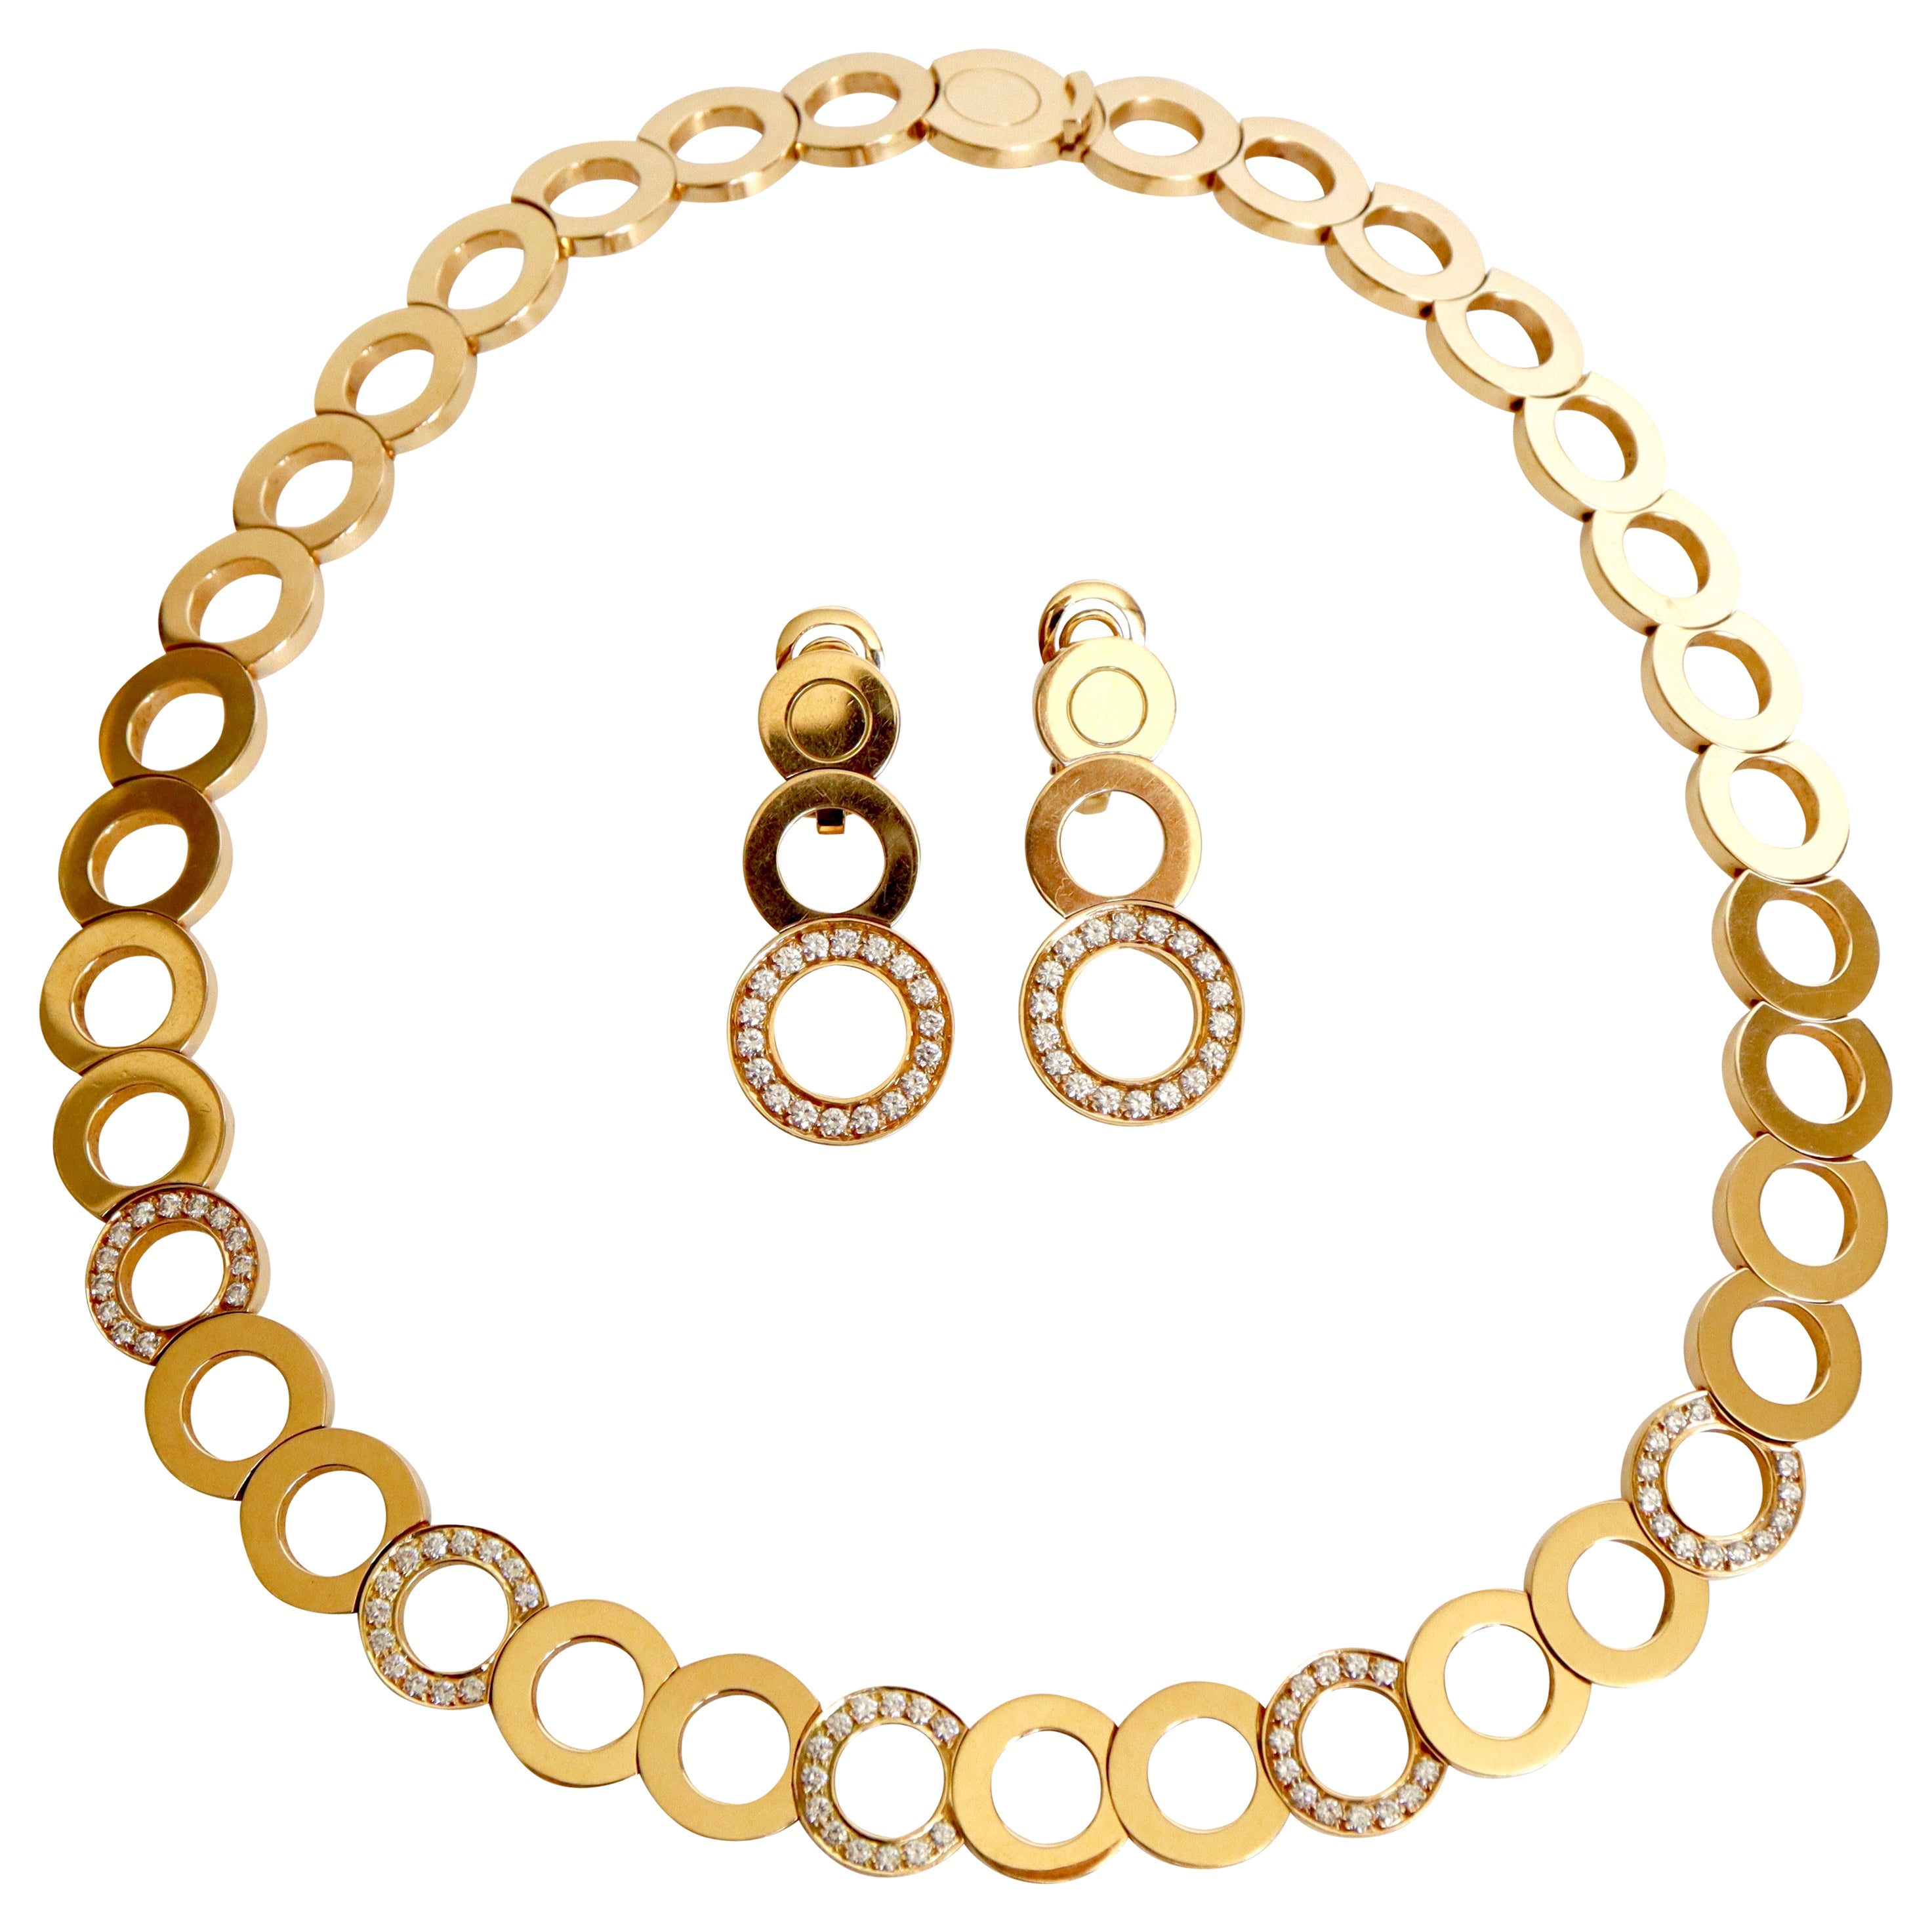 O.J. Perrin Set of a Necklace and Earrings in 18 Carat Gold and Diamonds